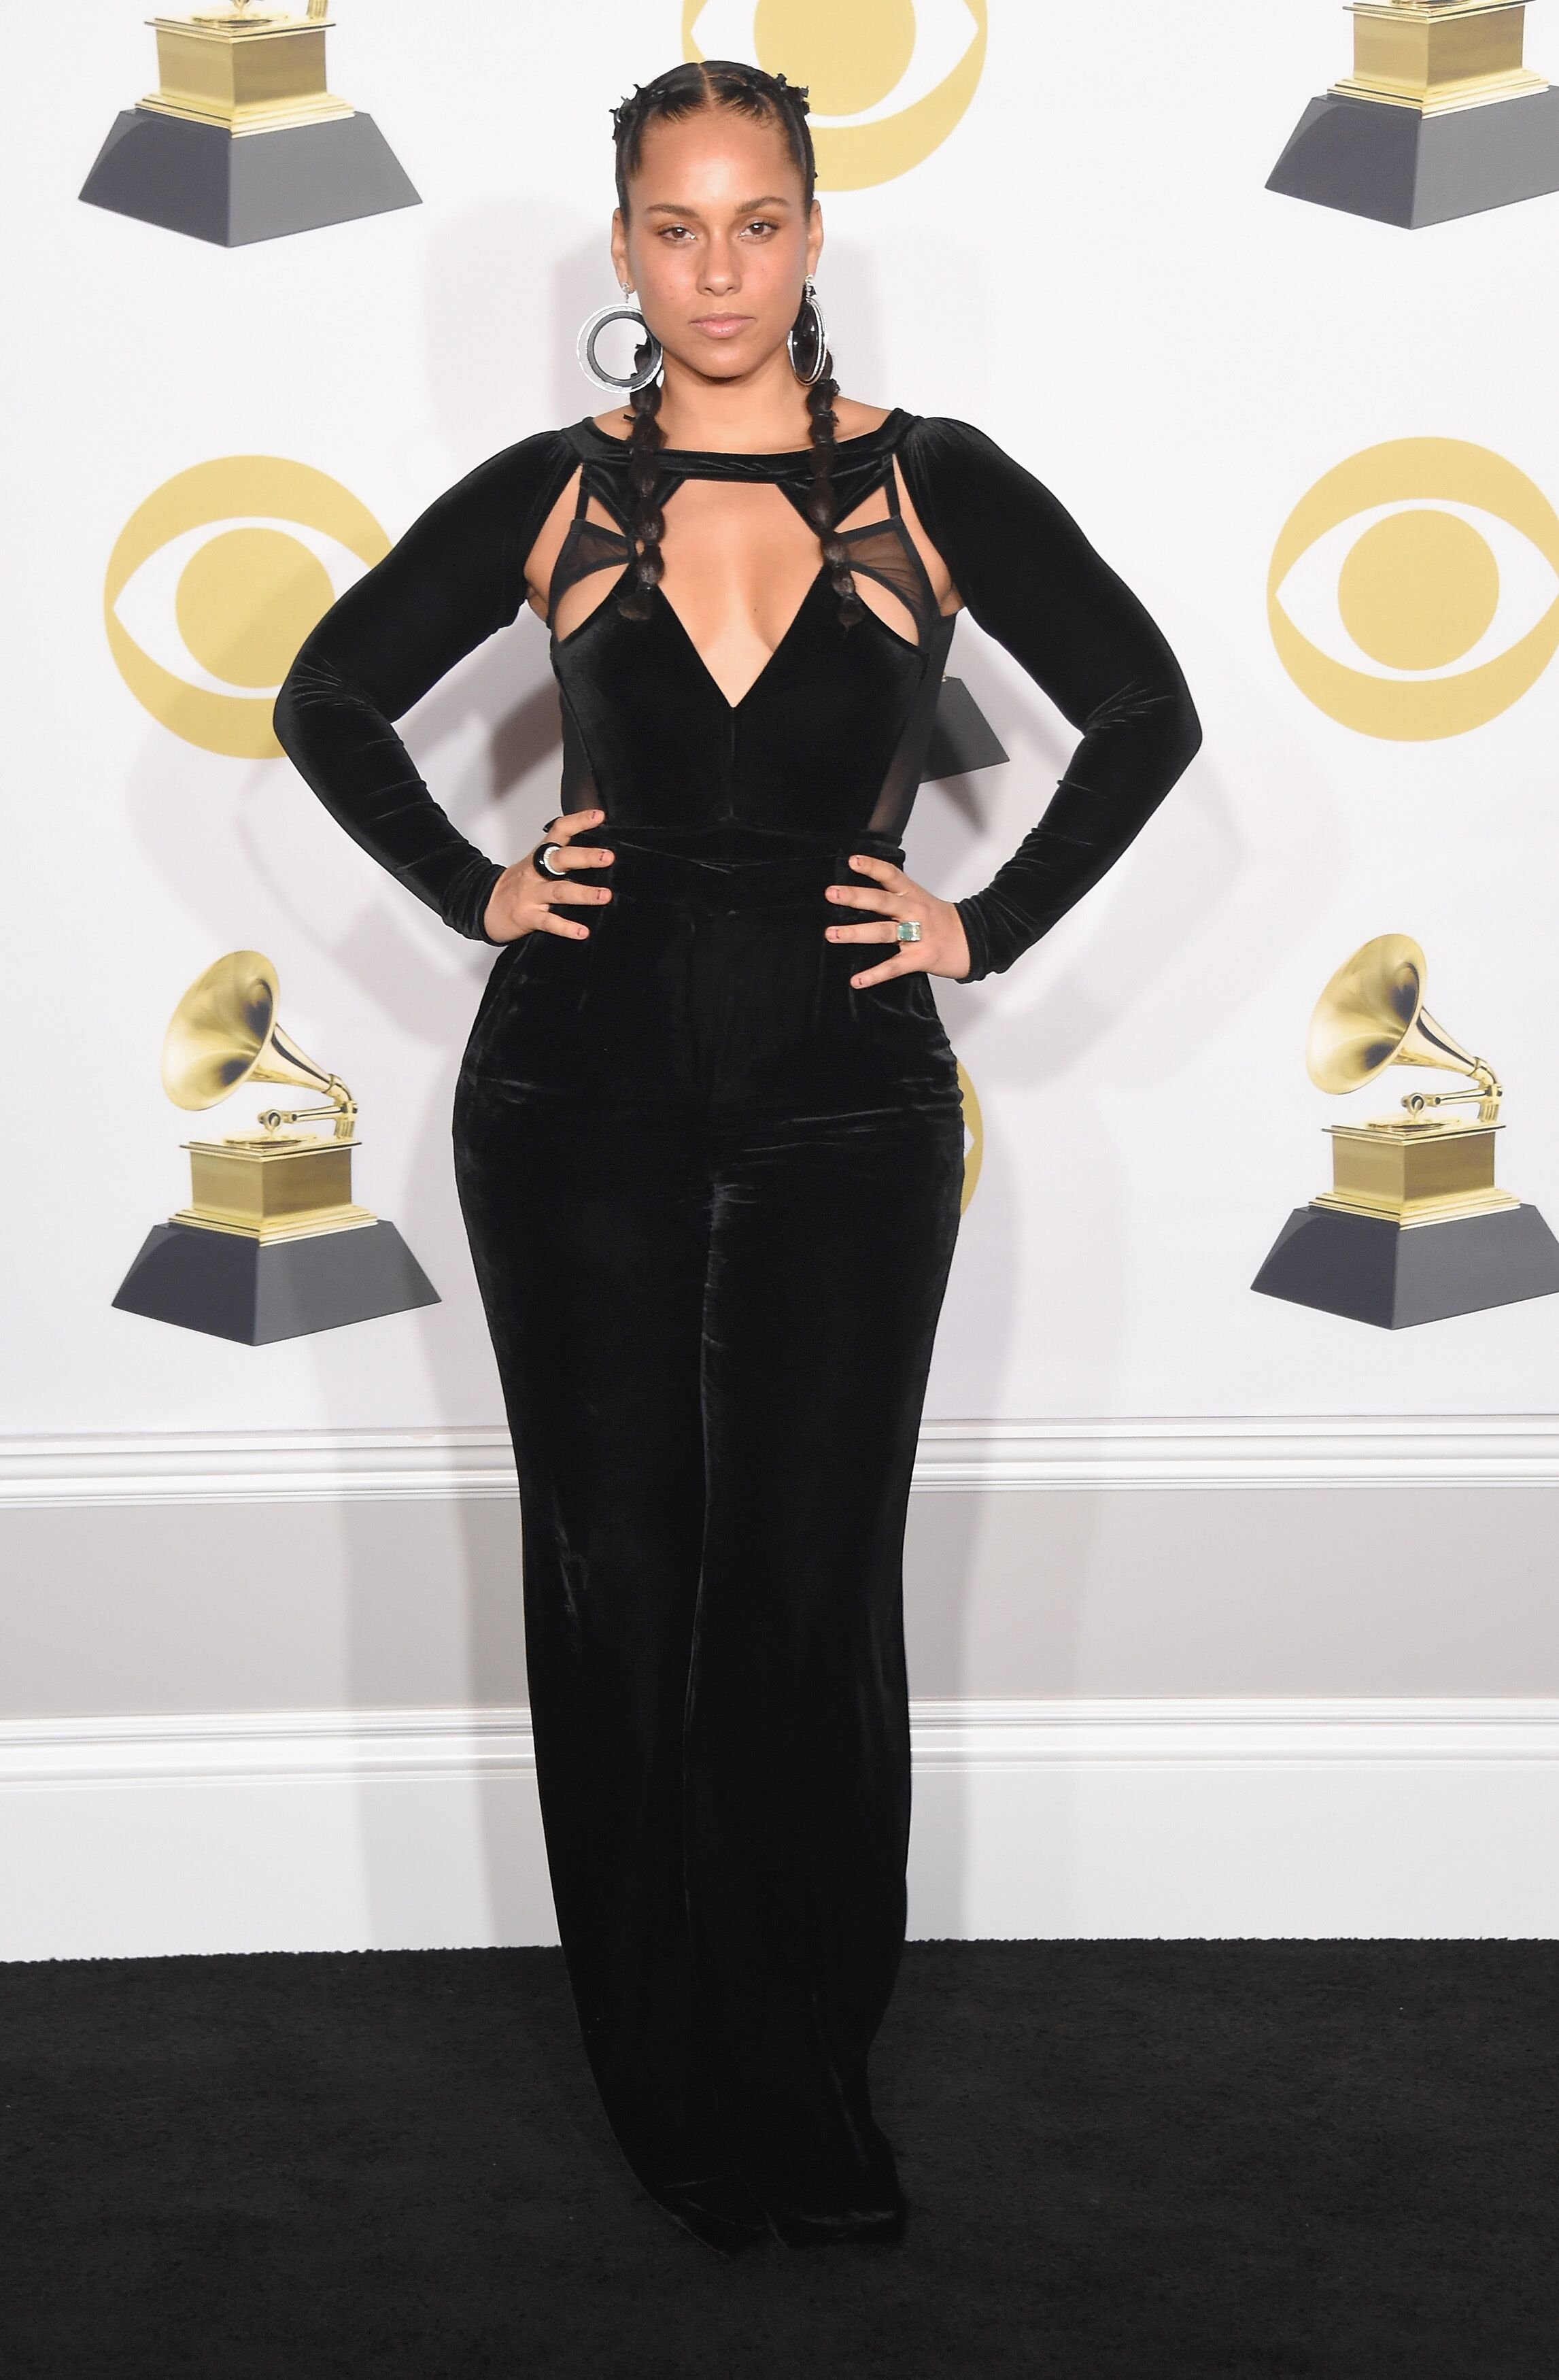 Alicia Keys at the 60th Annual GRAMMY Awards on January 28, 2018. | Photo: Getty Images